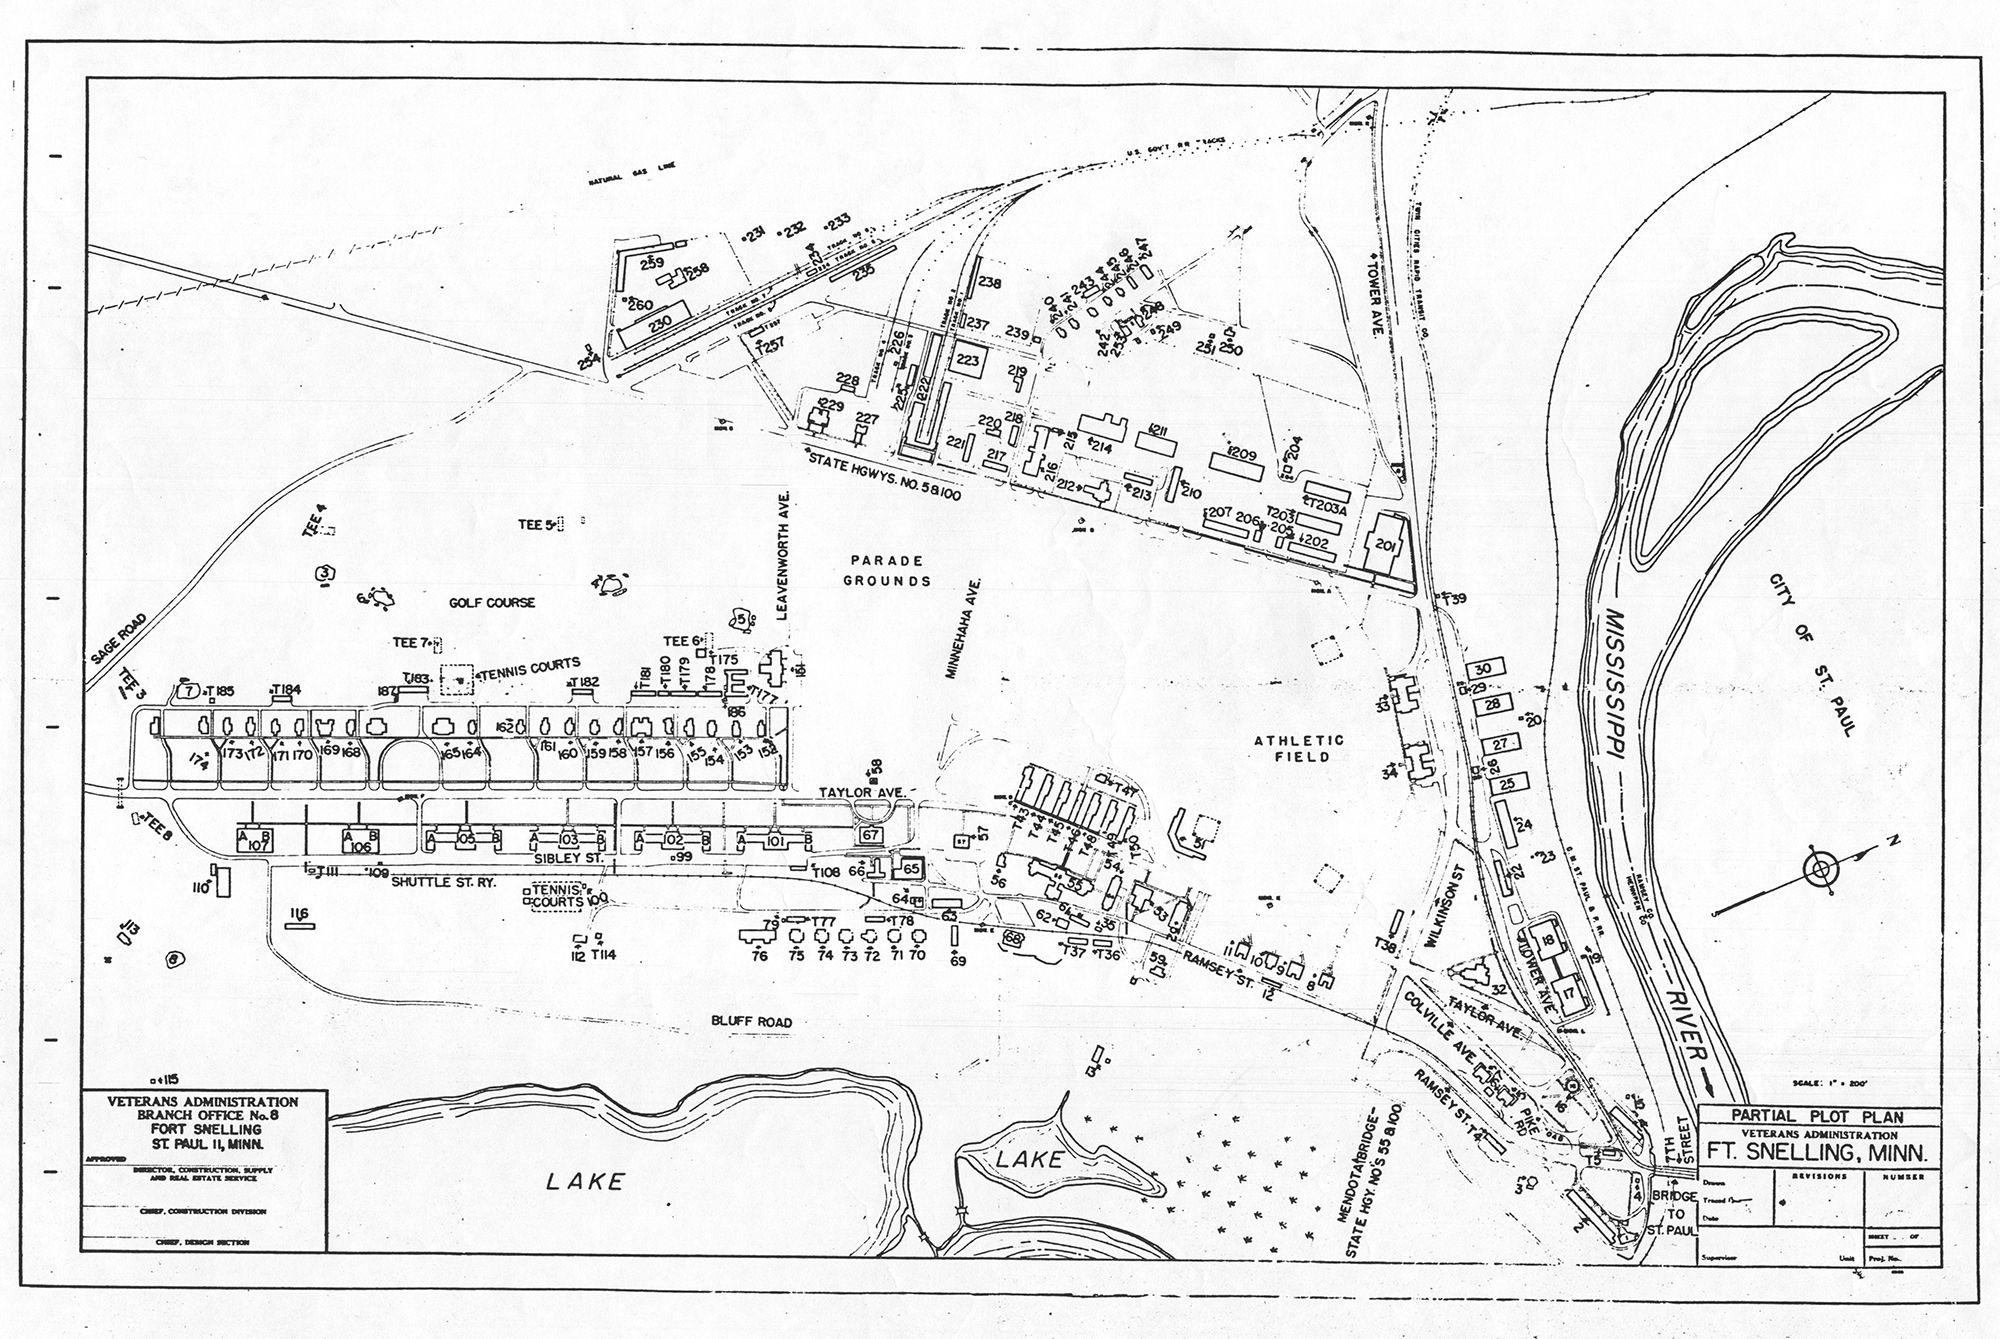 Plan view of Fort Snelling, Minnesota, 1950, showing Taylor Ave. (lower left quadrant) and other streets on the Upper Post. Source: Veterans Administration. Digital image courtesy of the Minnesota Historical Society.